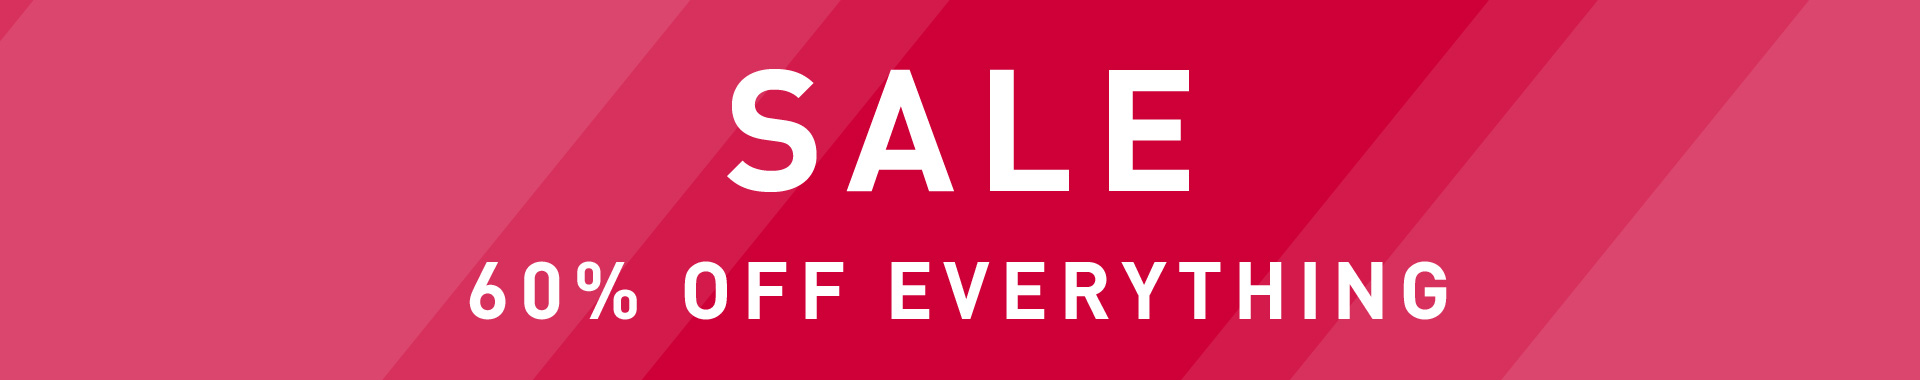 Sale -60% off everything